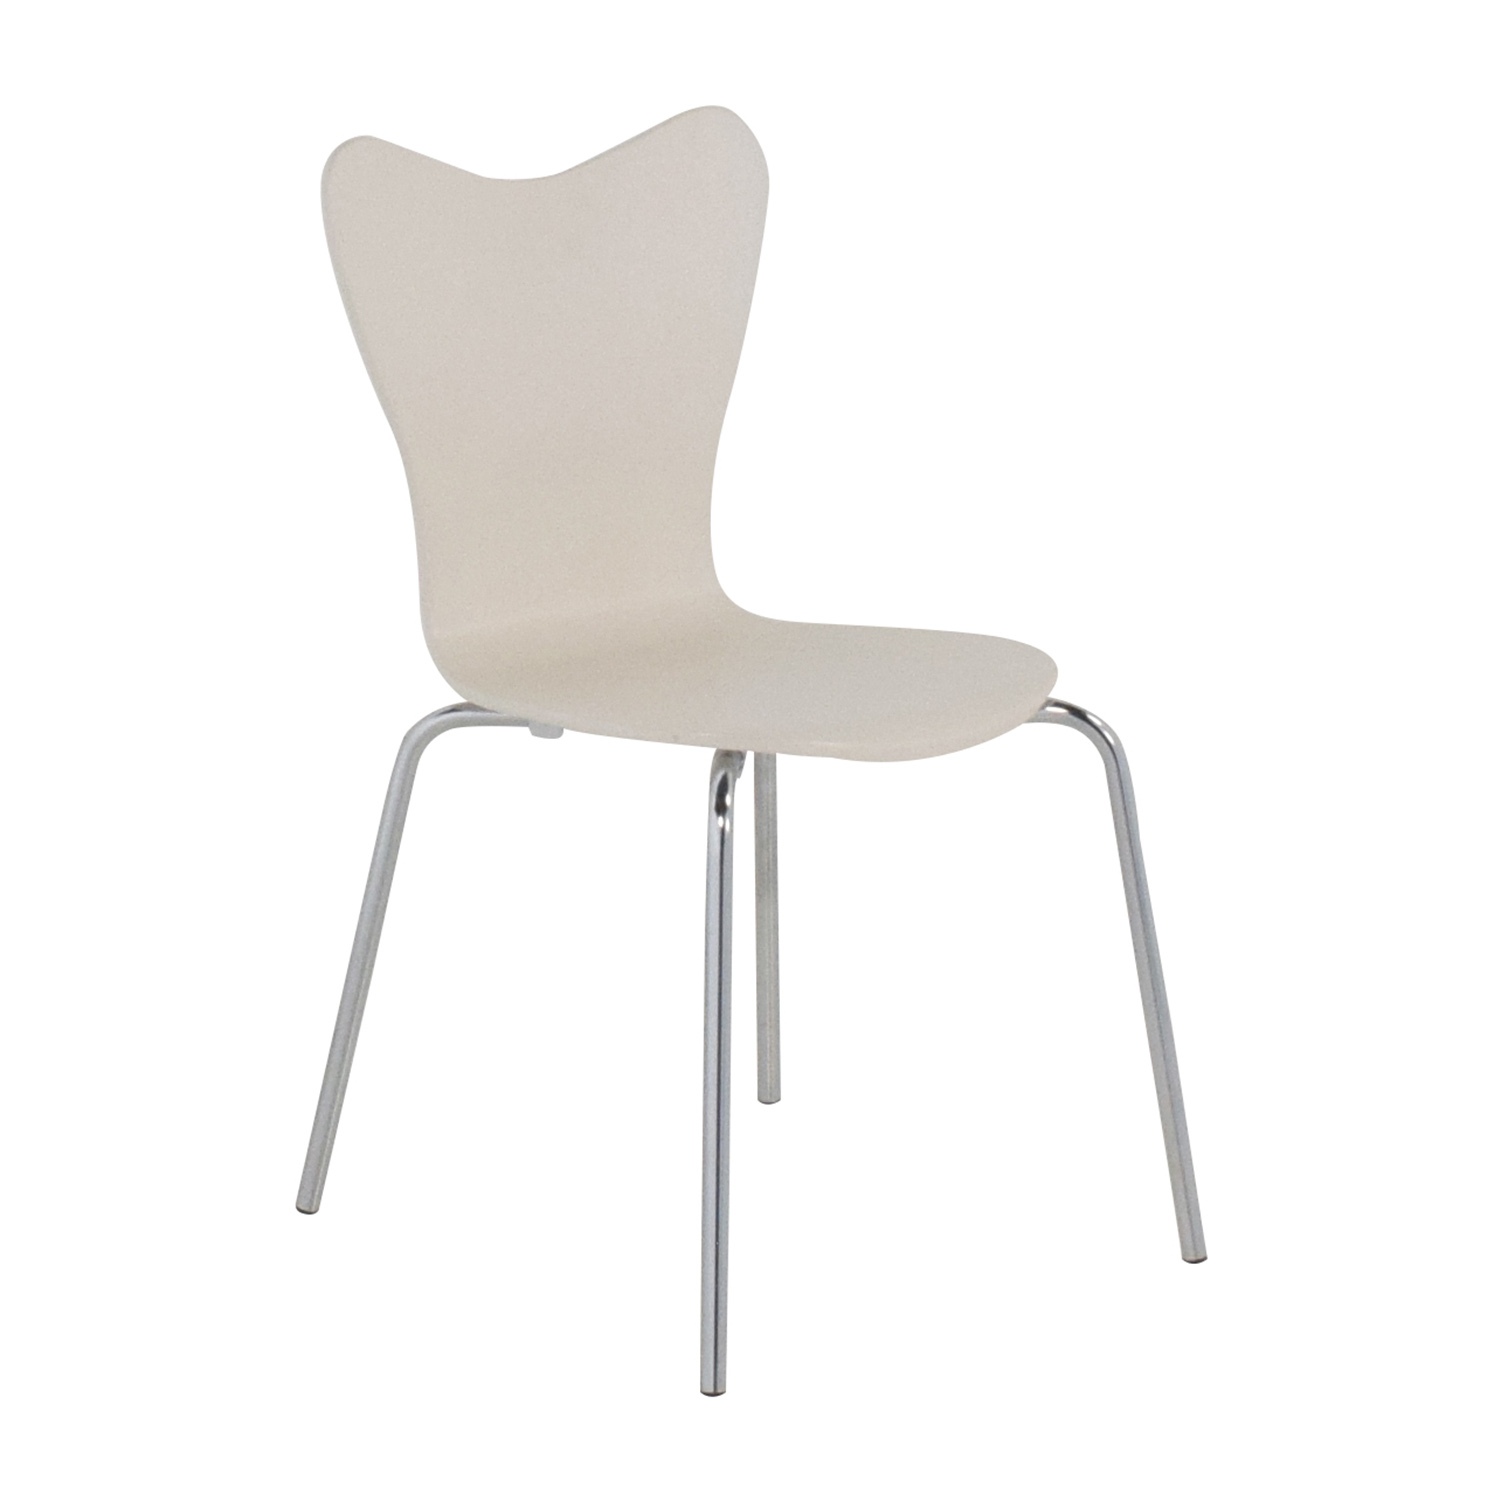 50% OFF PBteen PBteen White Desk Chair Chairs